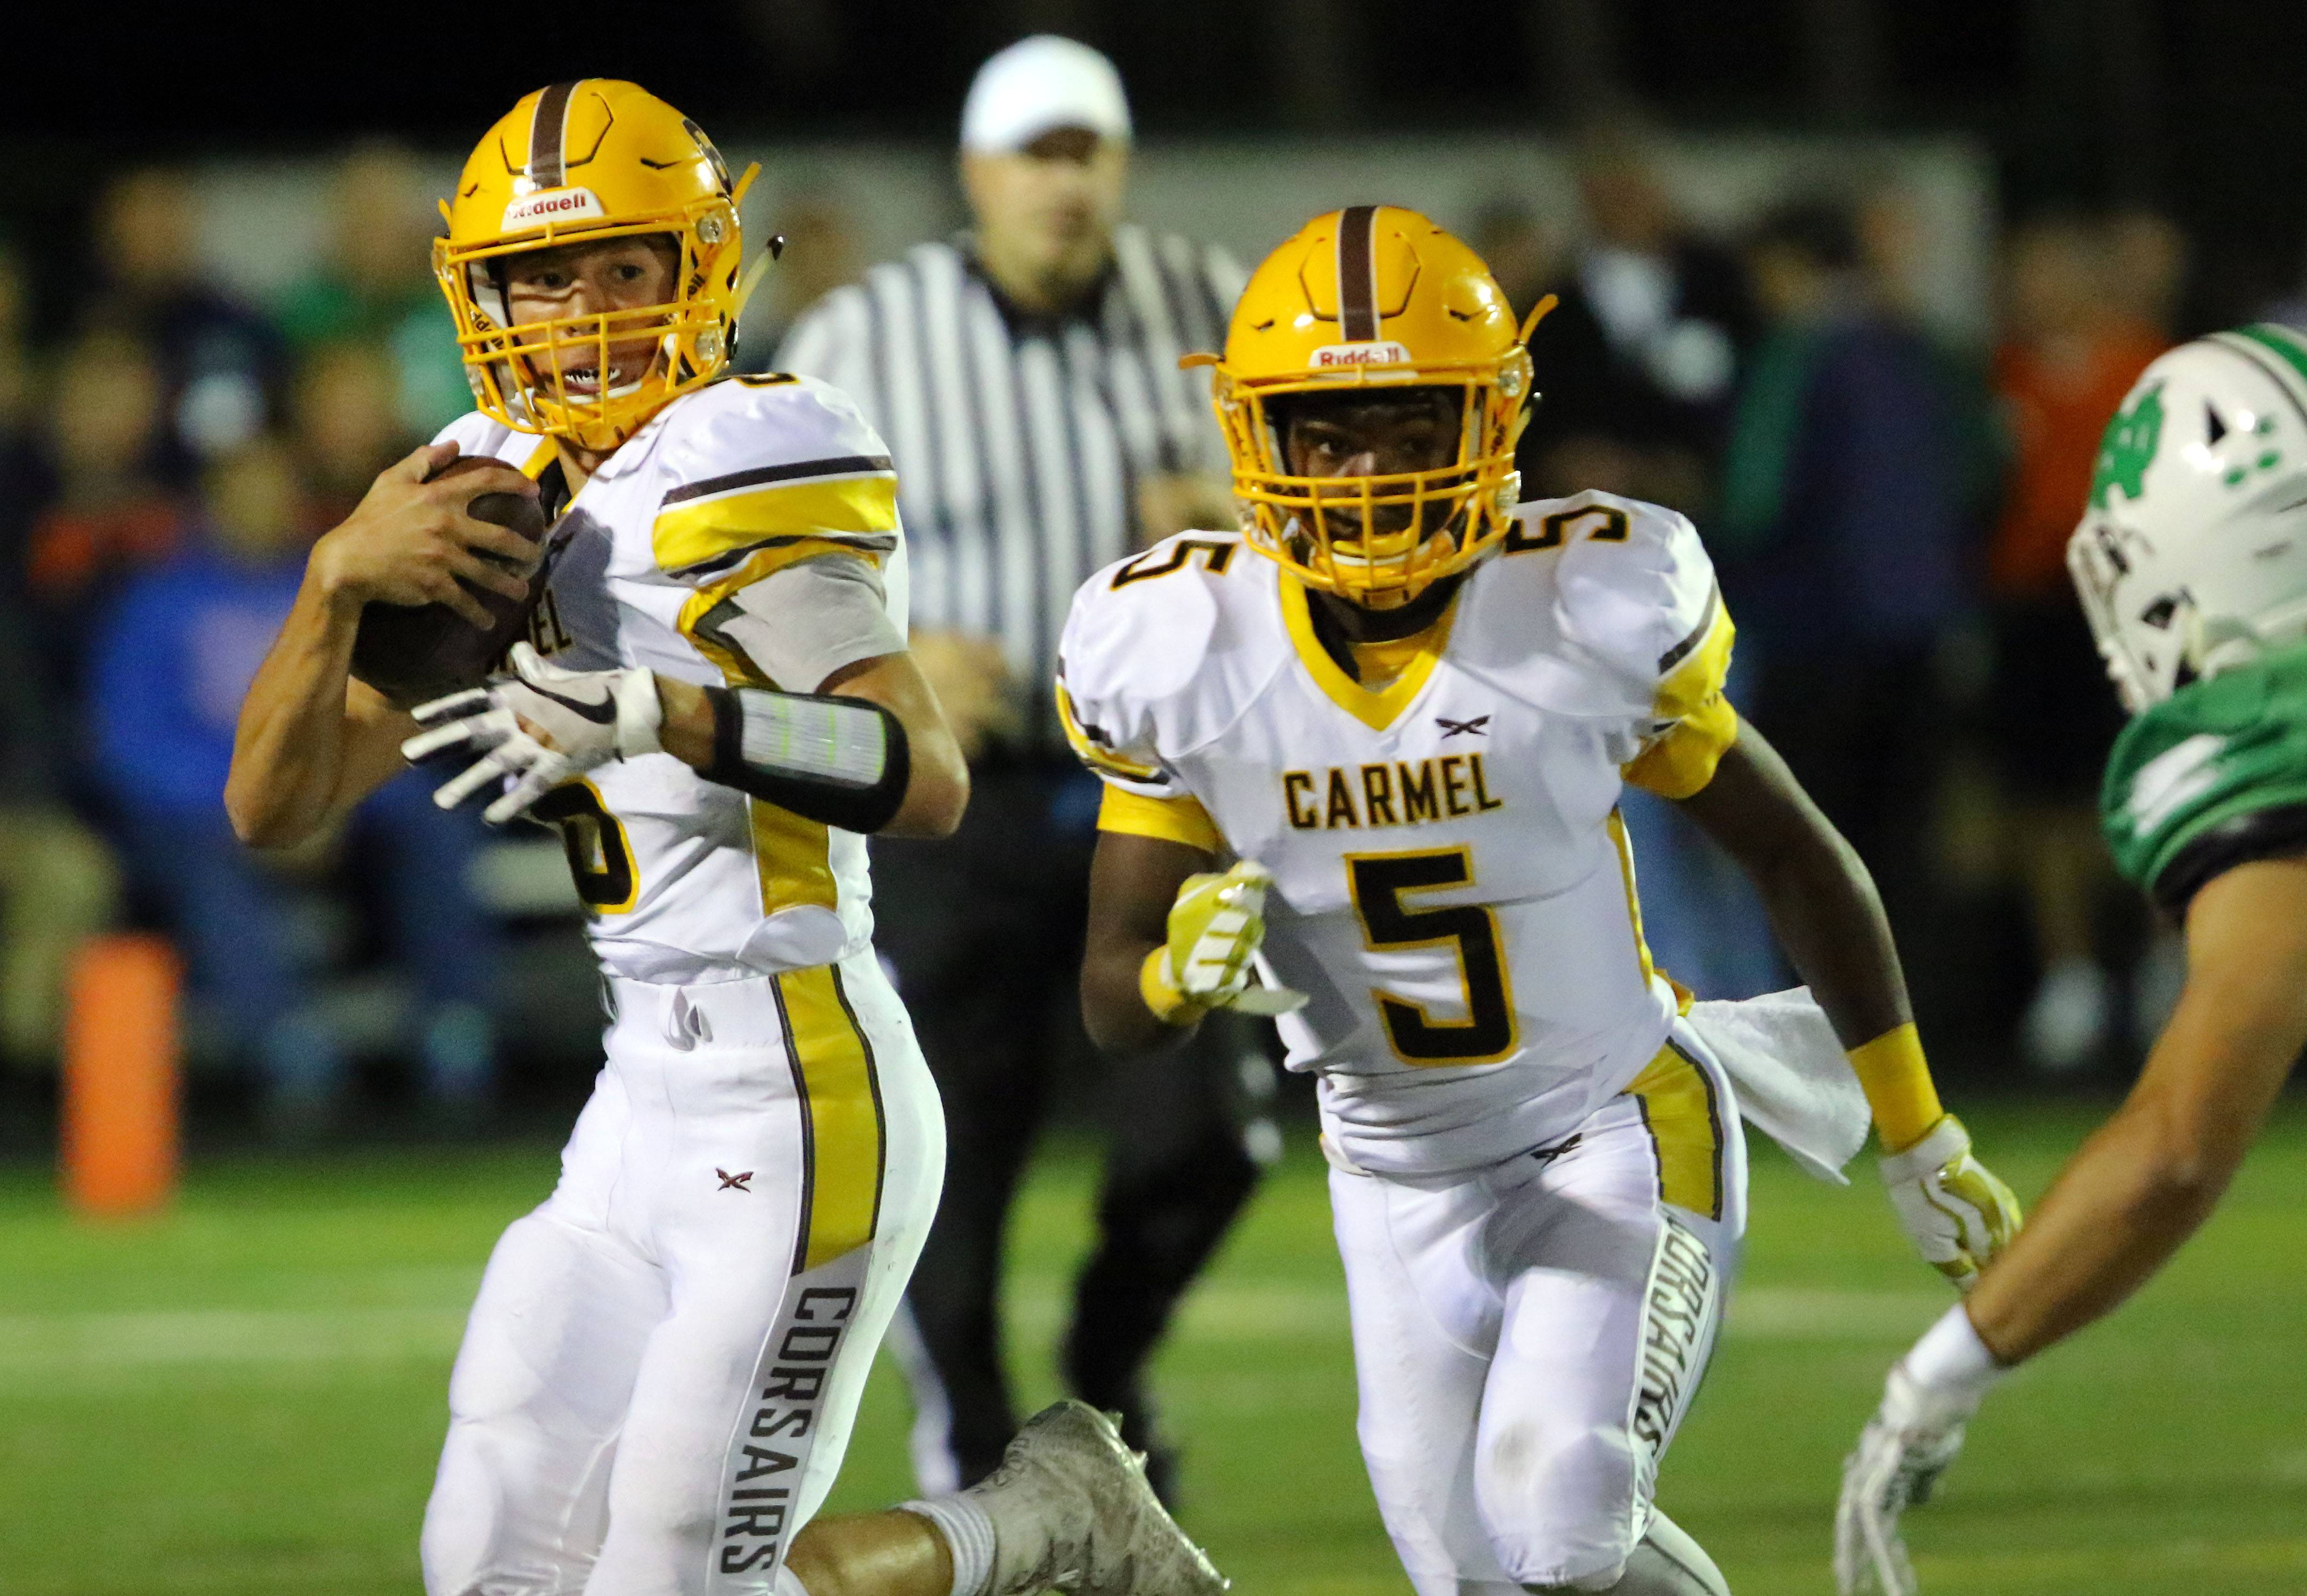 Images: Notre Dame vs. Carmel football